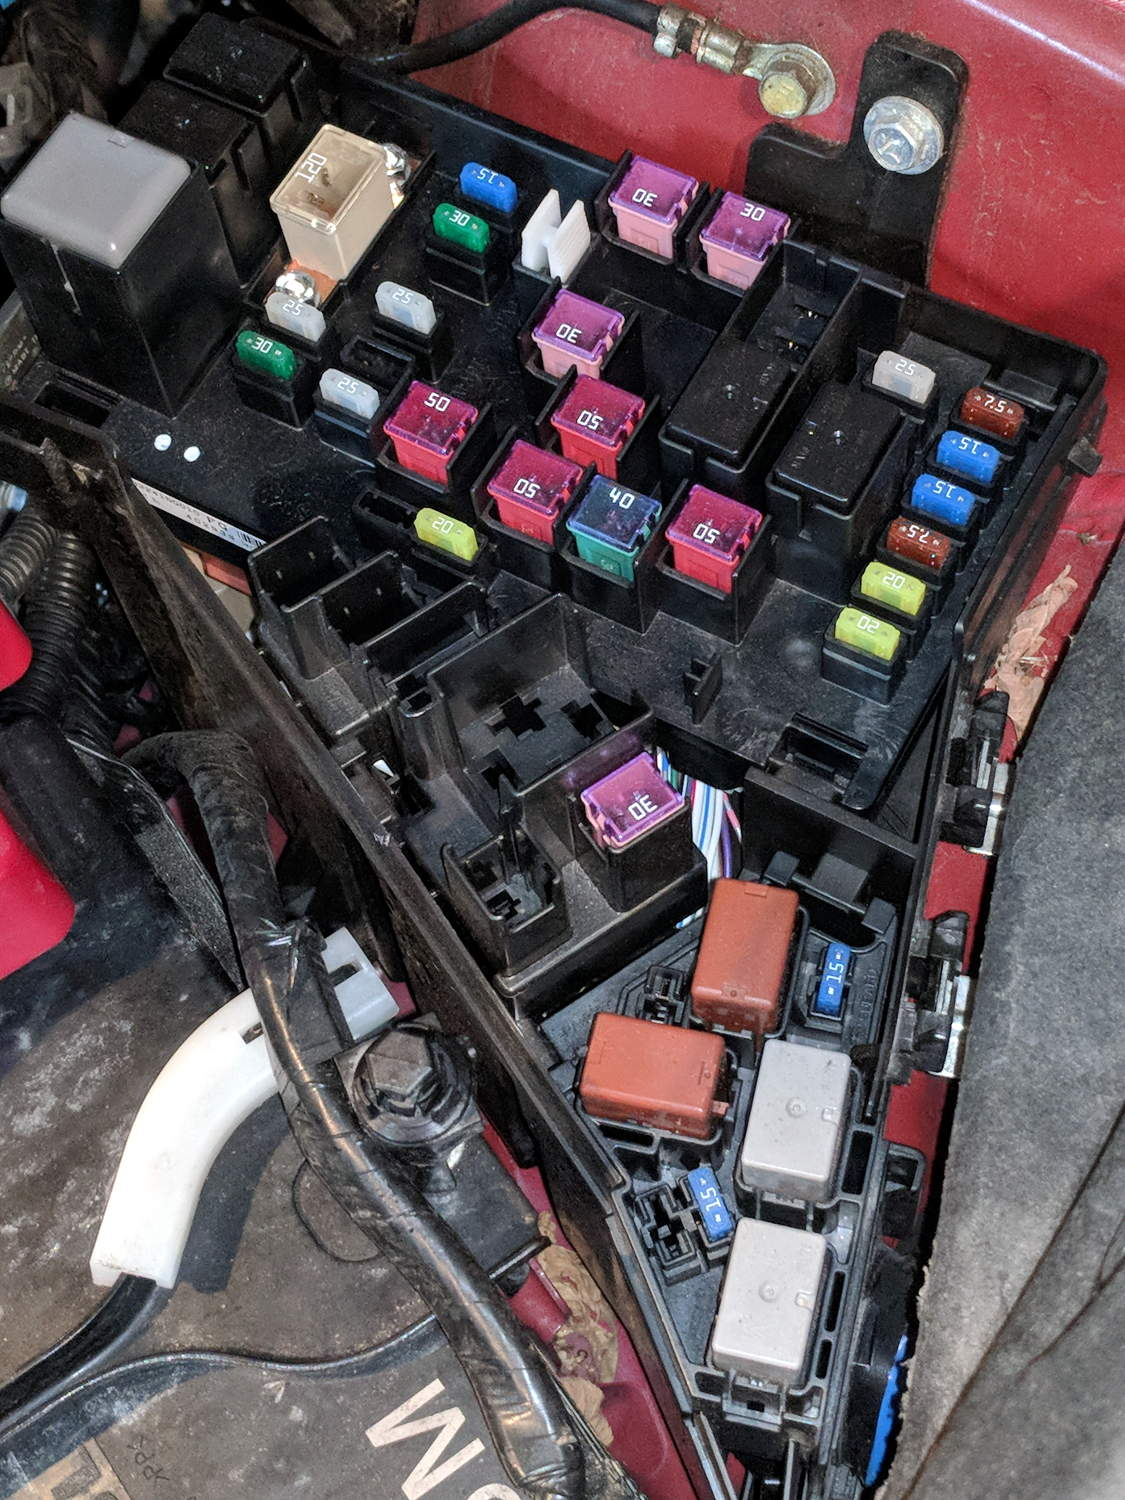 hight resolution of subaru forester fuse boxes the smell of molten projects in the morning 2000 ford f 150 fuse box diagram how looks the fuse box